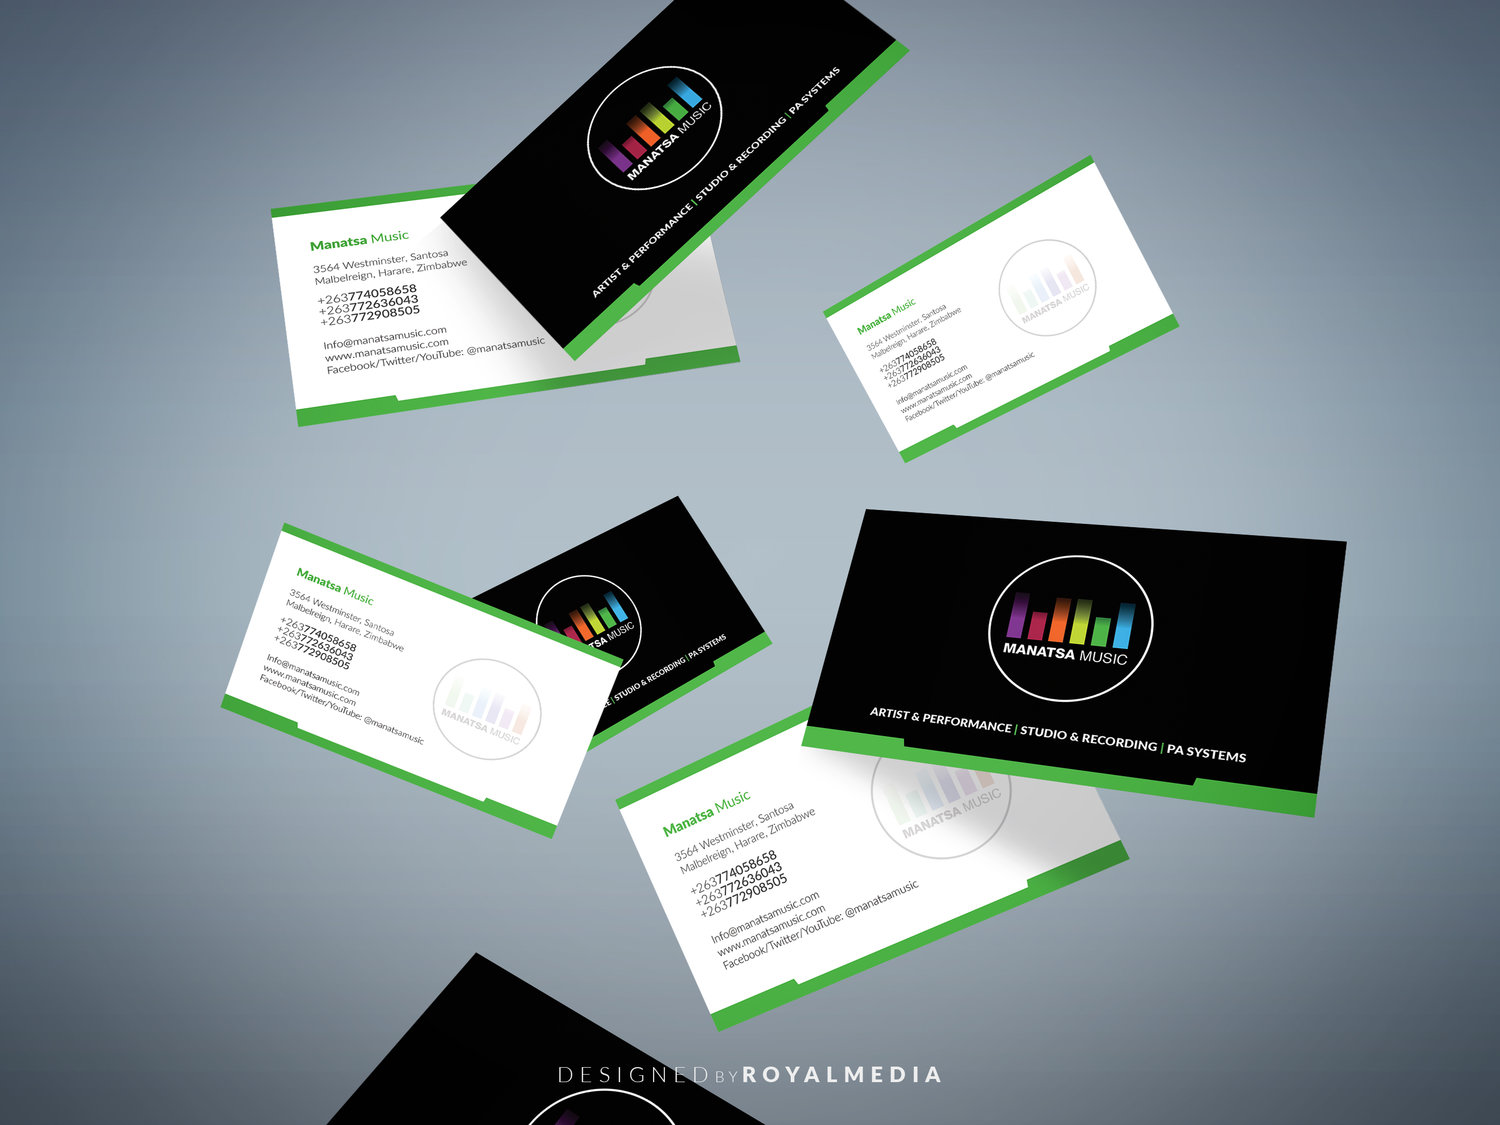 Stationary rmnow flying business cards mockup volg reheart Image collections